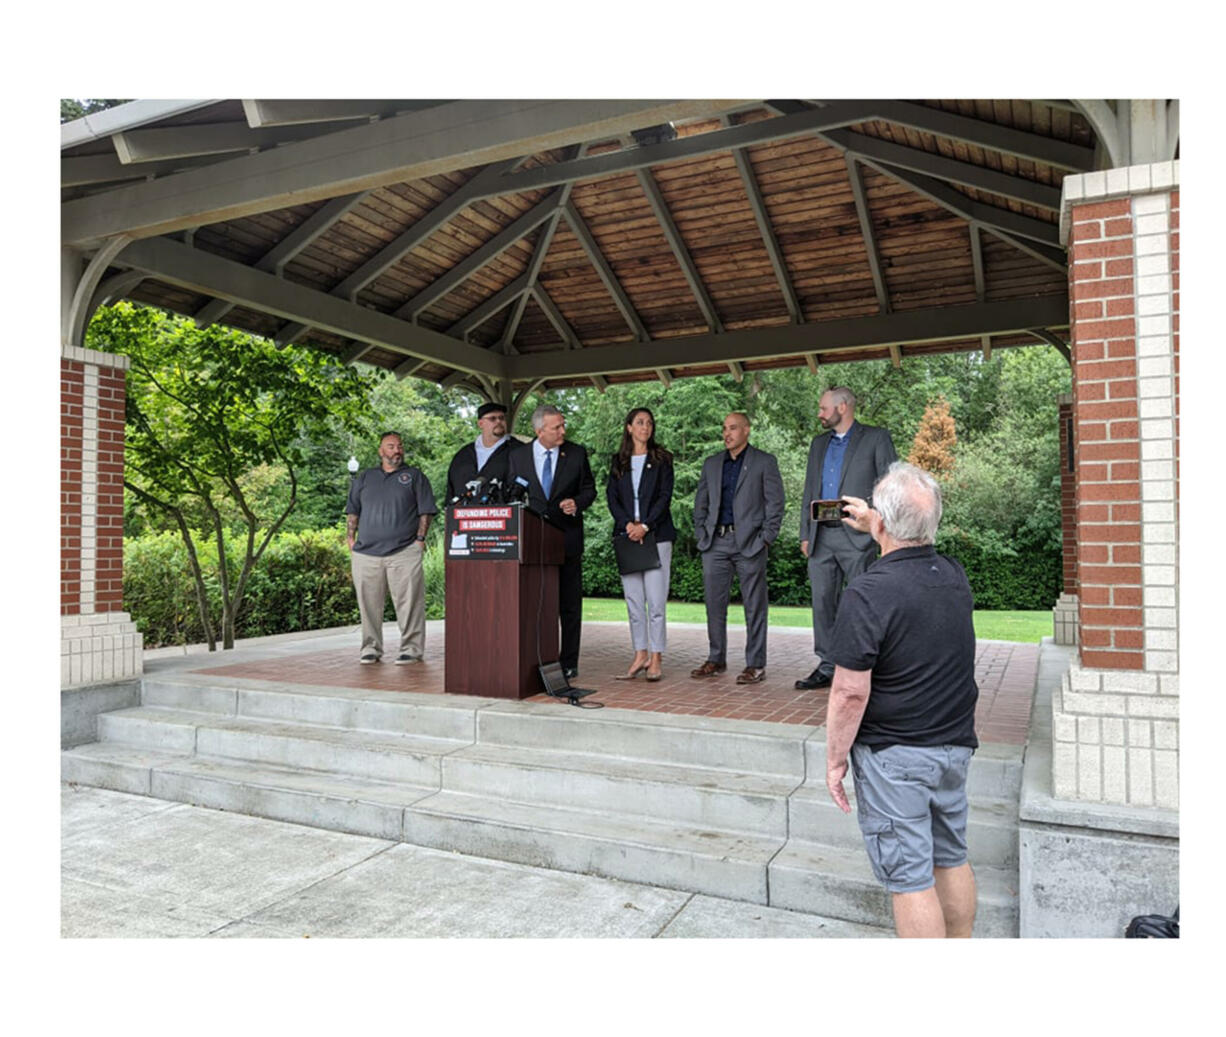 3rd District Rep. Jaime Herrera Beutler, R-Battle Ground, center, participates in a press conference regarding law enforcement issues Thursday in Fairview, Ore.